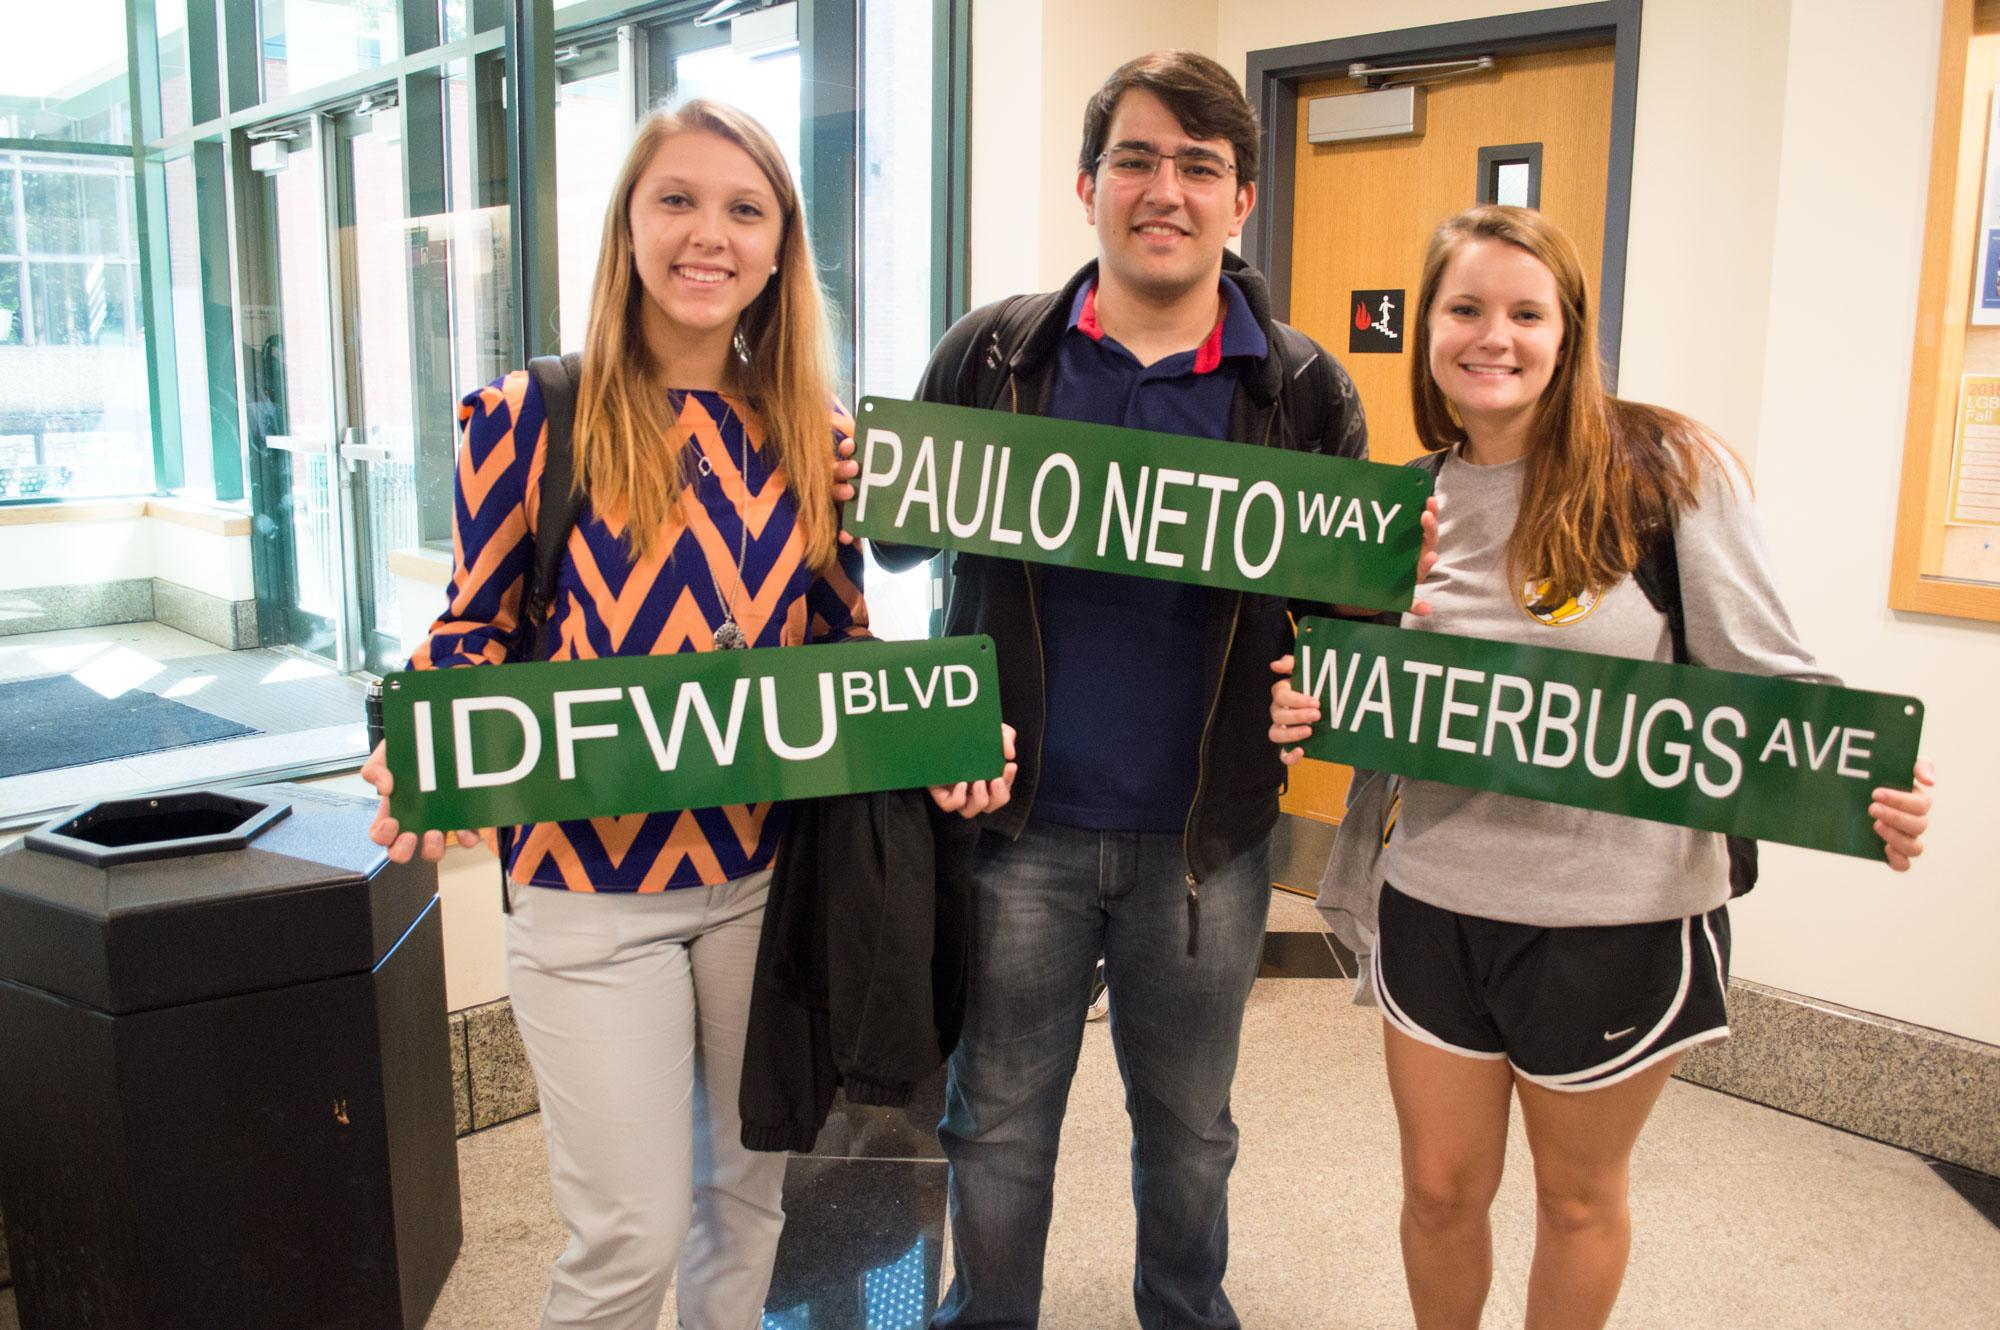 """Students """"Make-Their-Own Street sign"""" at APPS event"""